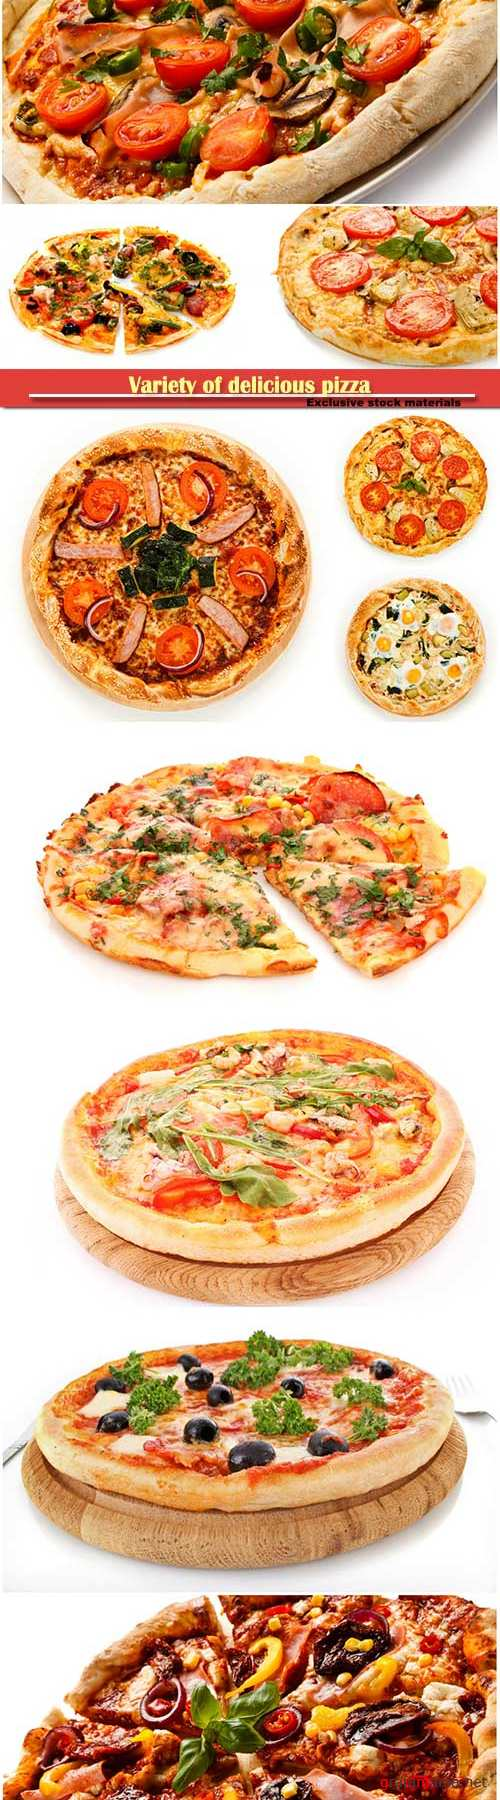 Variety of delicious pizza